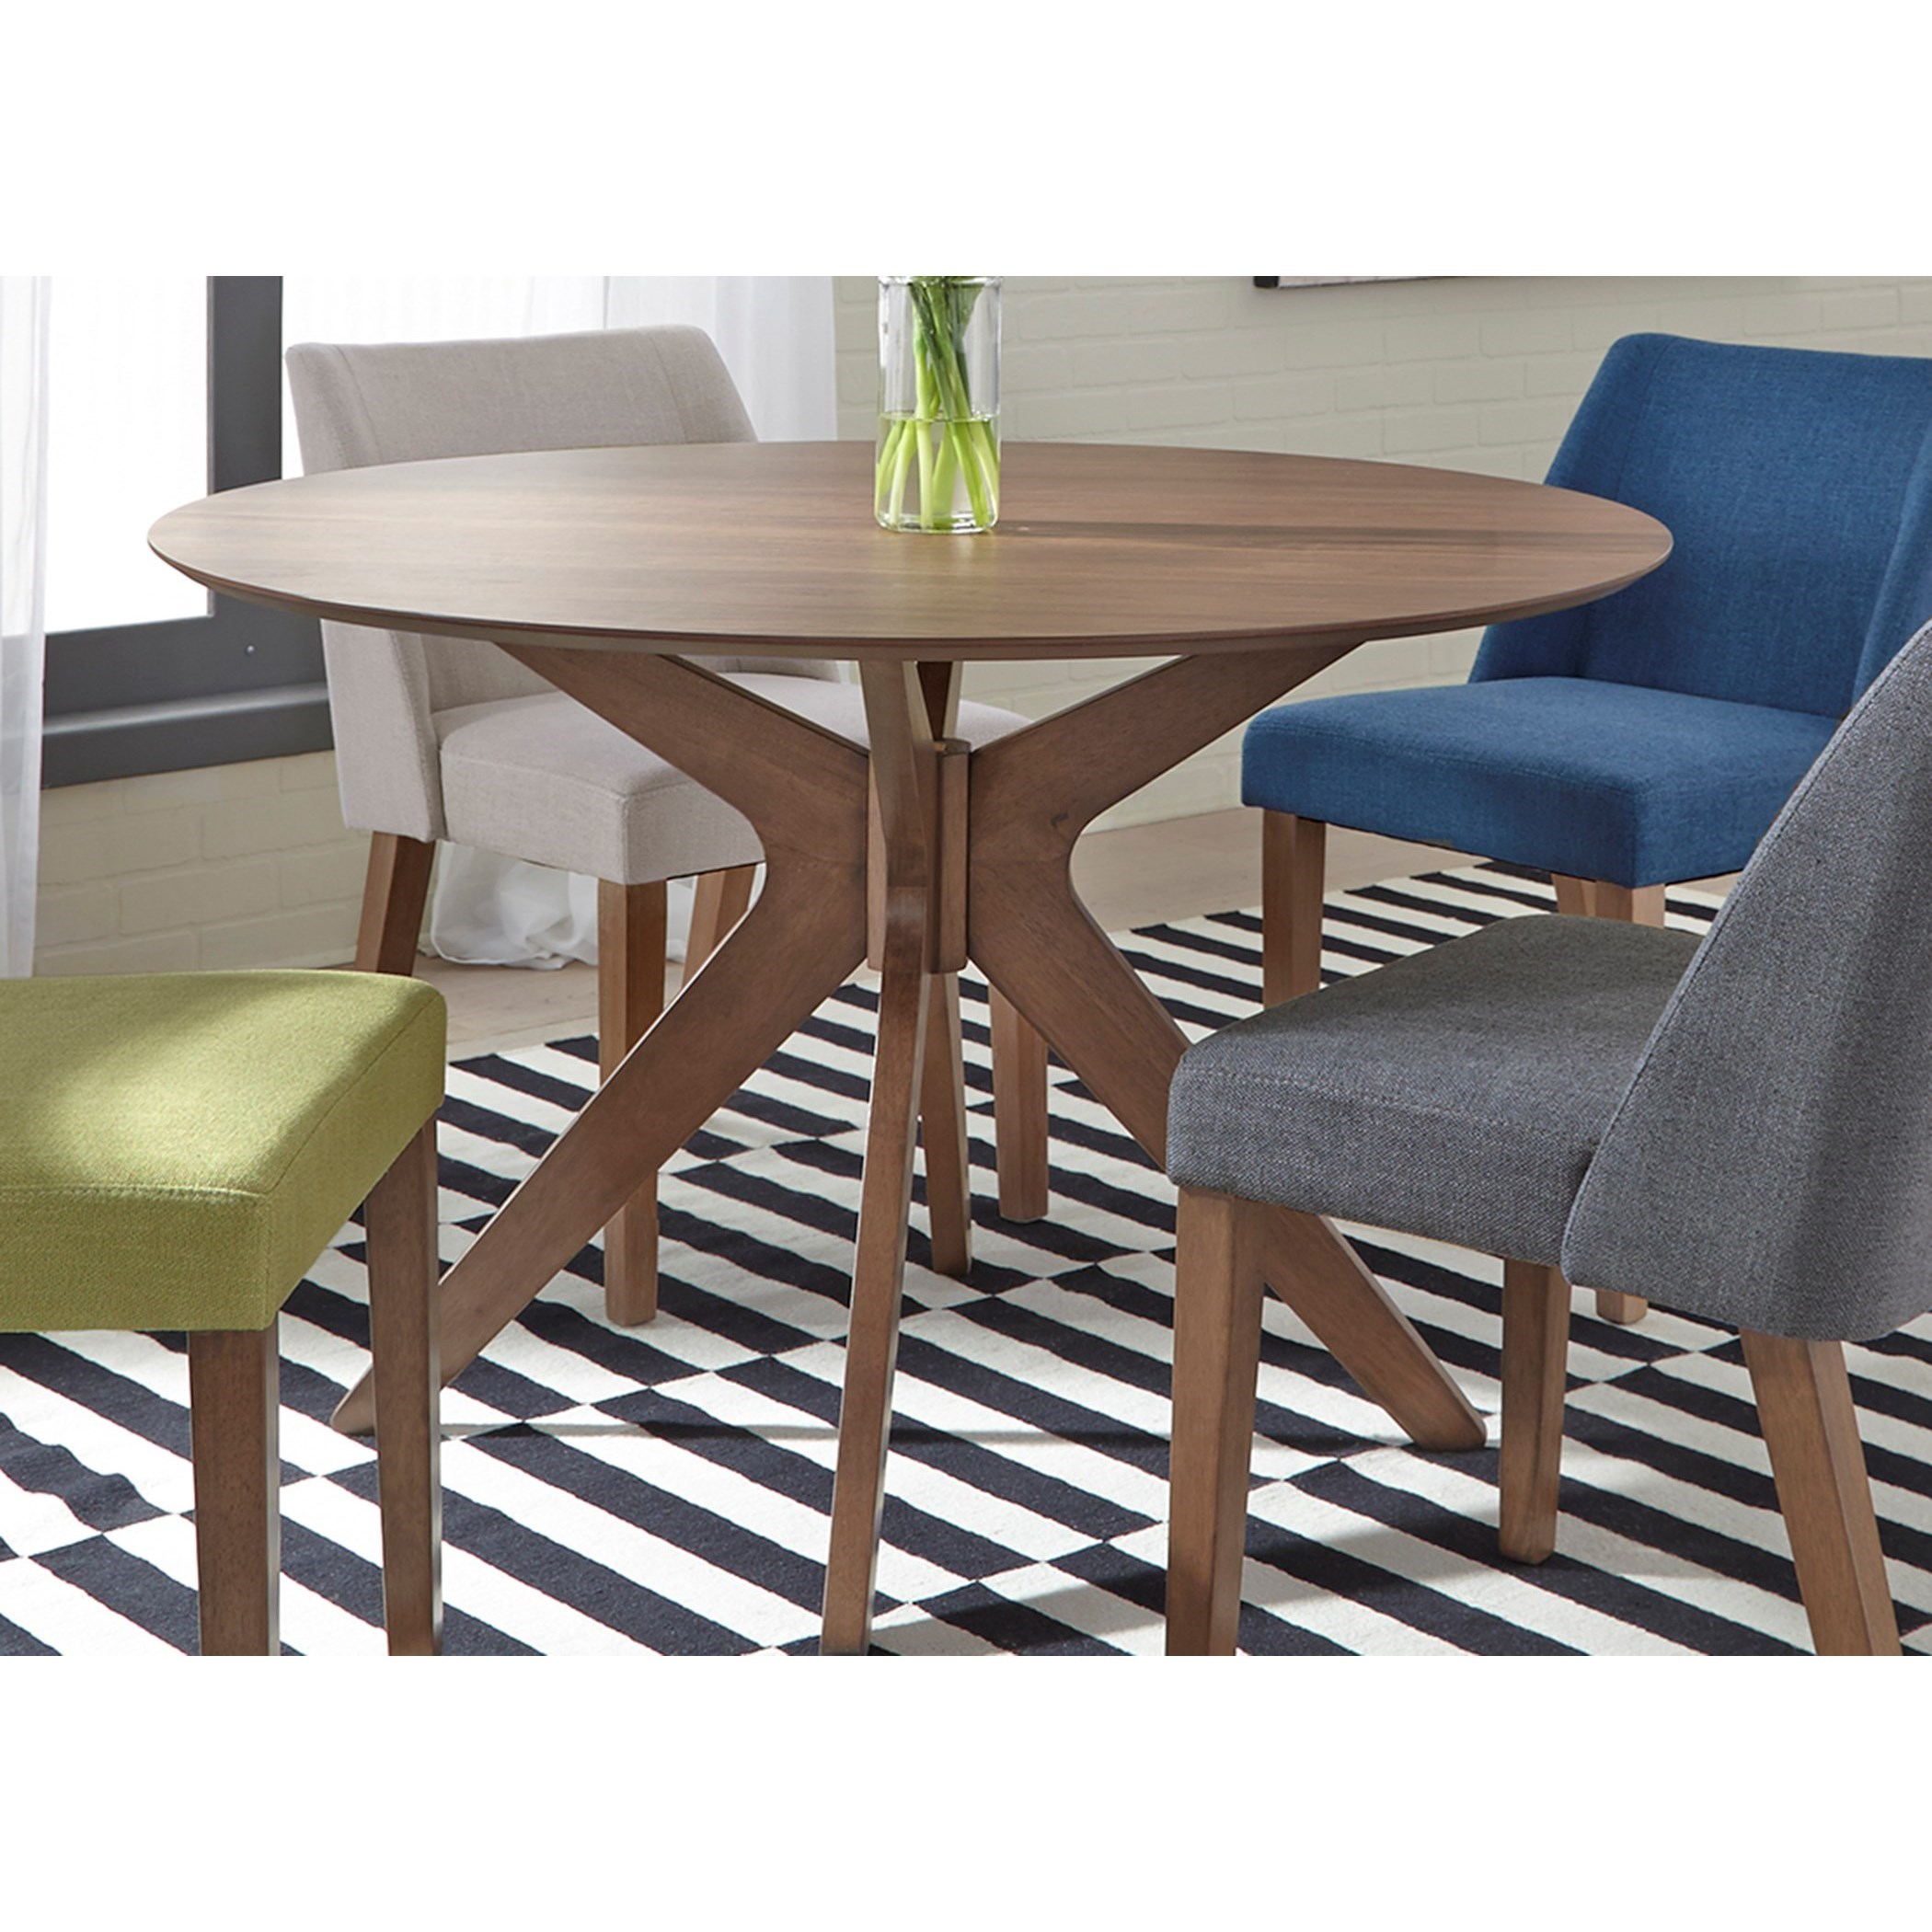 Space Savers Round Pedestal Table by Libby at Walker's Furniture